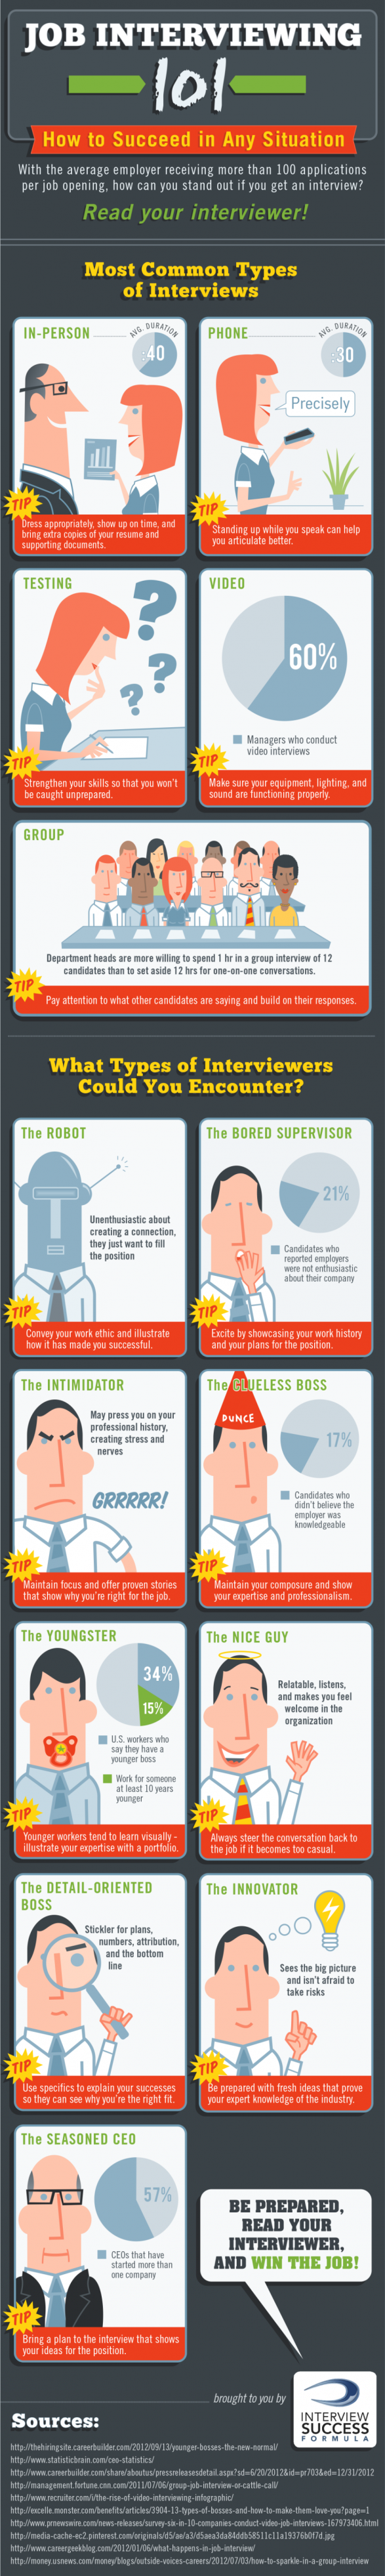 The Fruit Bowl - How to Read Your Interviewer [INFOGRAPHIC]